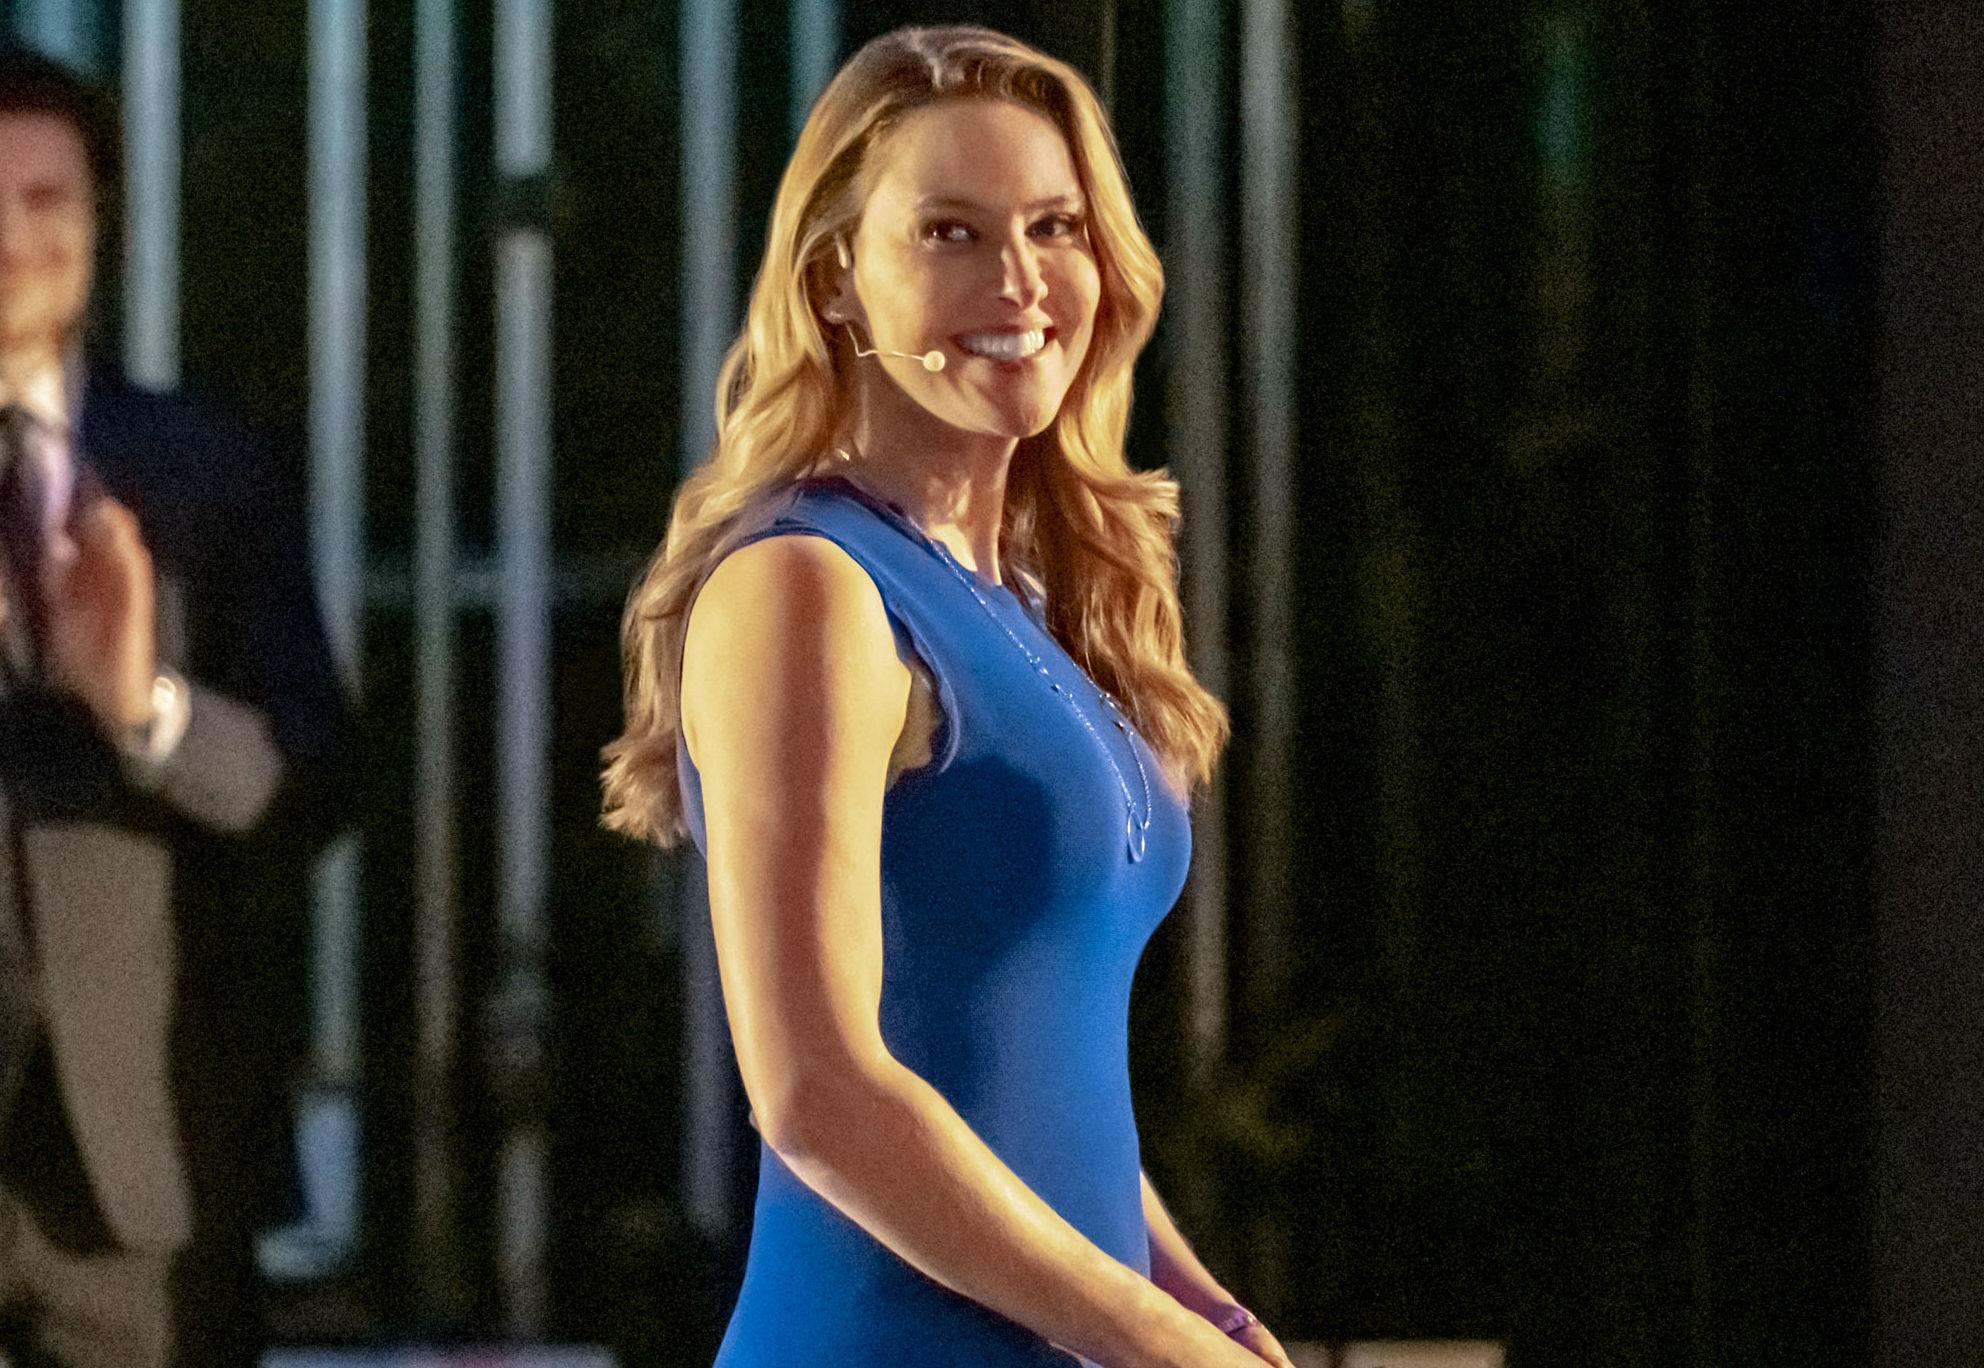 jill wagner hallmark blue dress